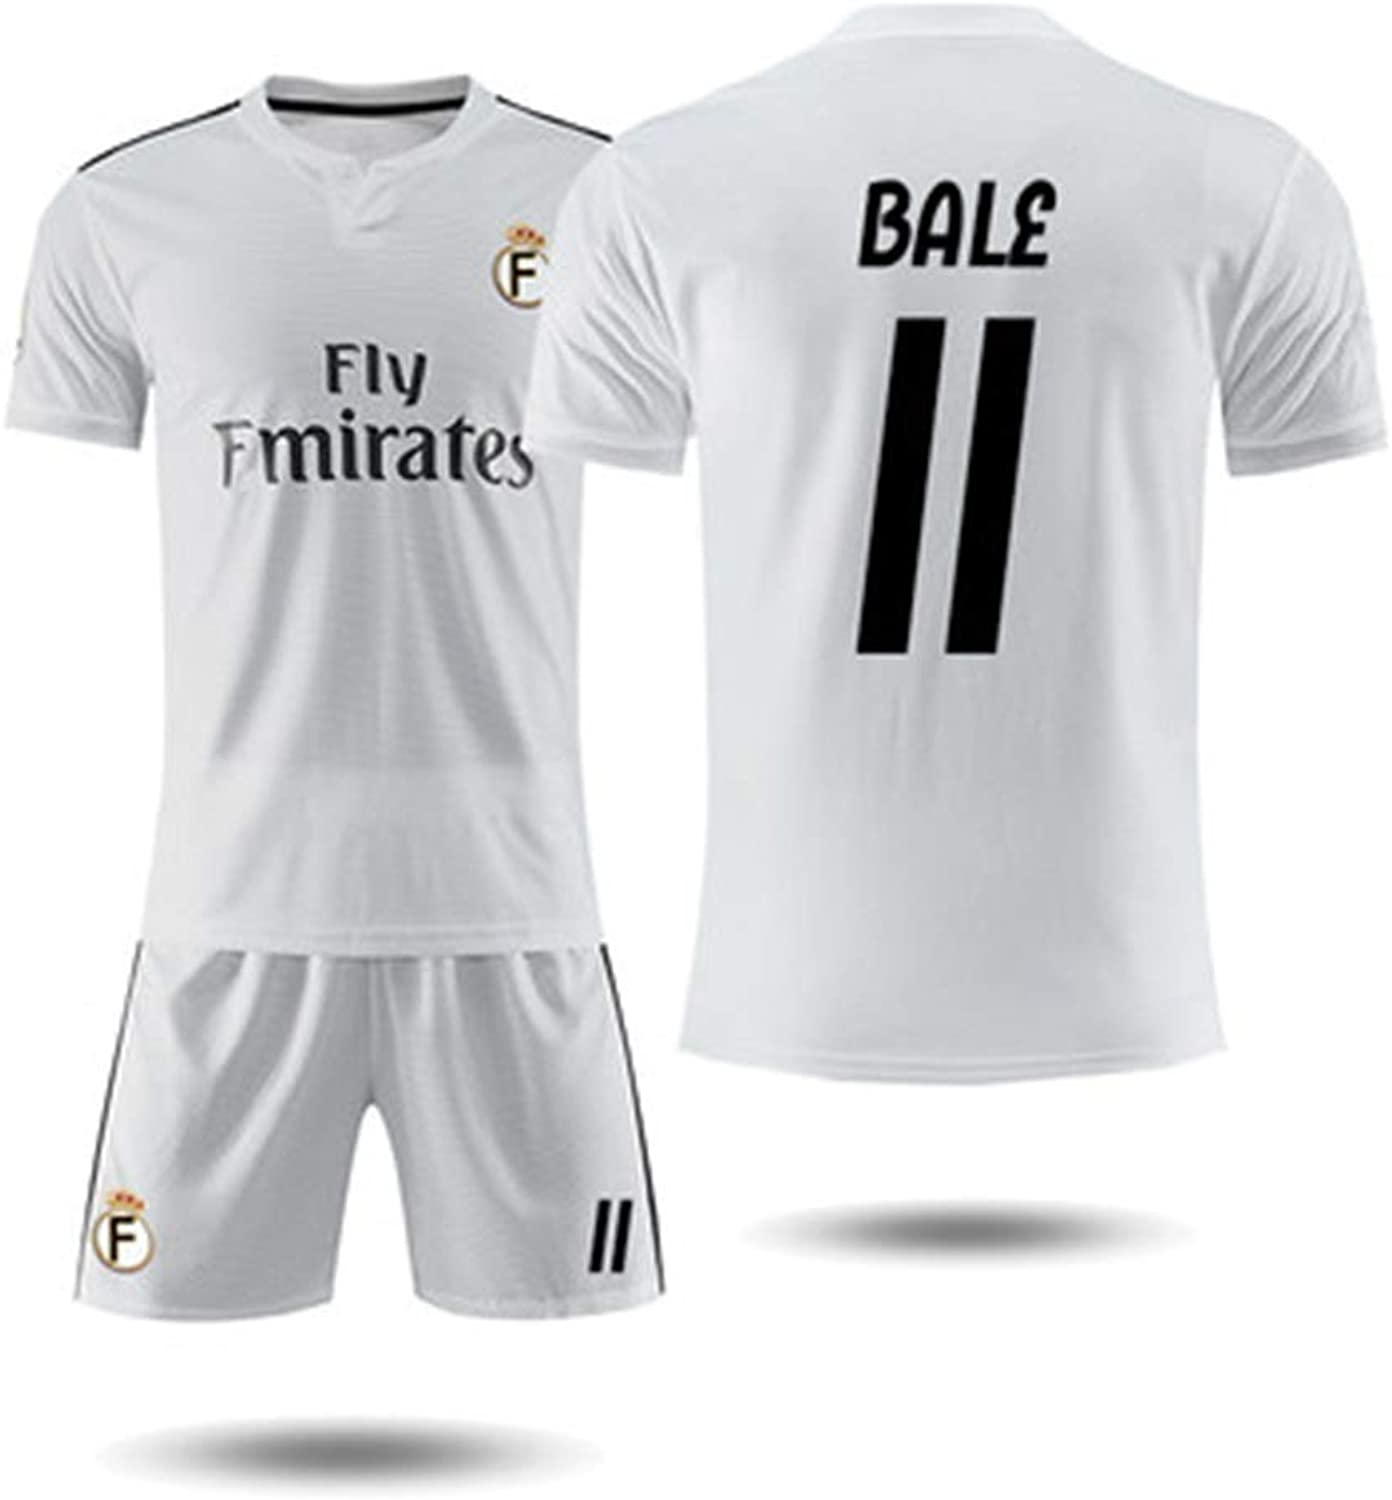 YAXIAO Short-Sleeved T-Shirt Shorts Real Madrid 18-19 Home Jersey 10th Modric Magic Flute Football Training Jersey T-Shirt (color   D, Size   M)